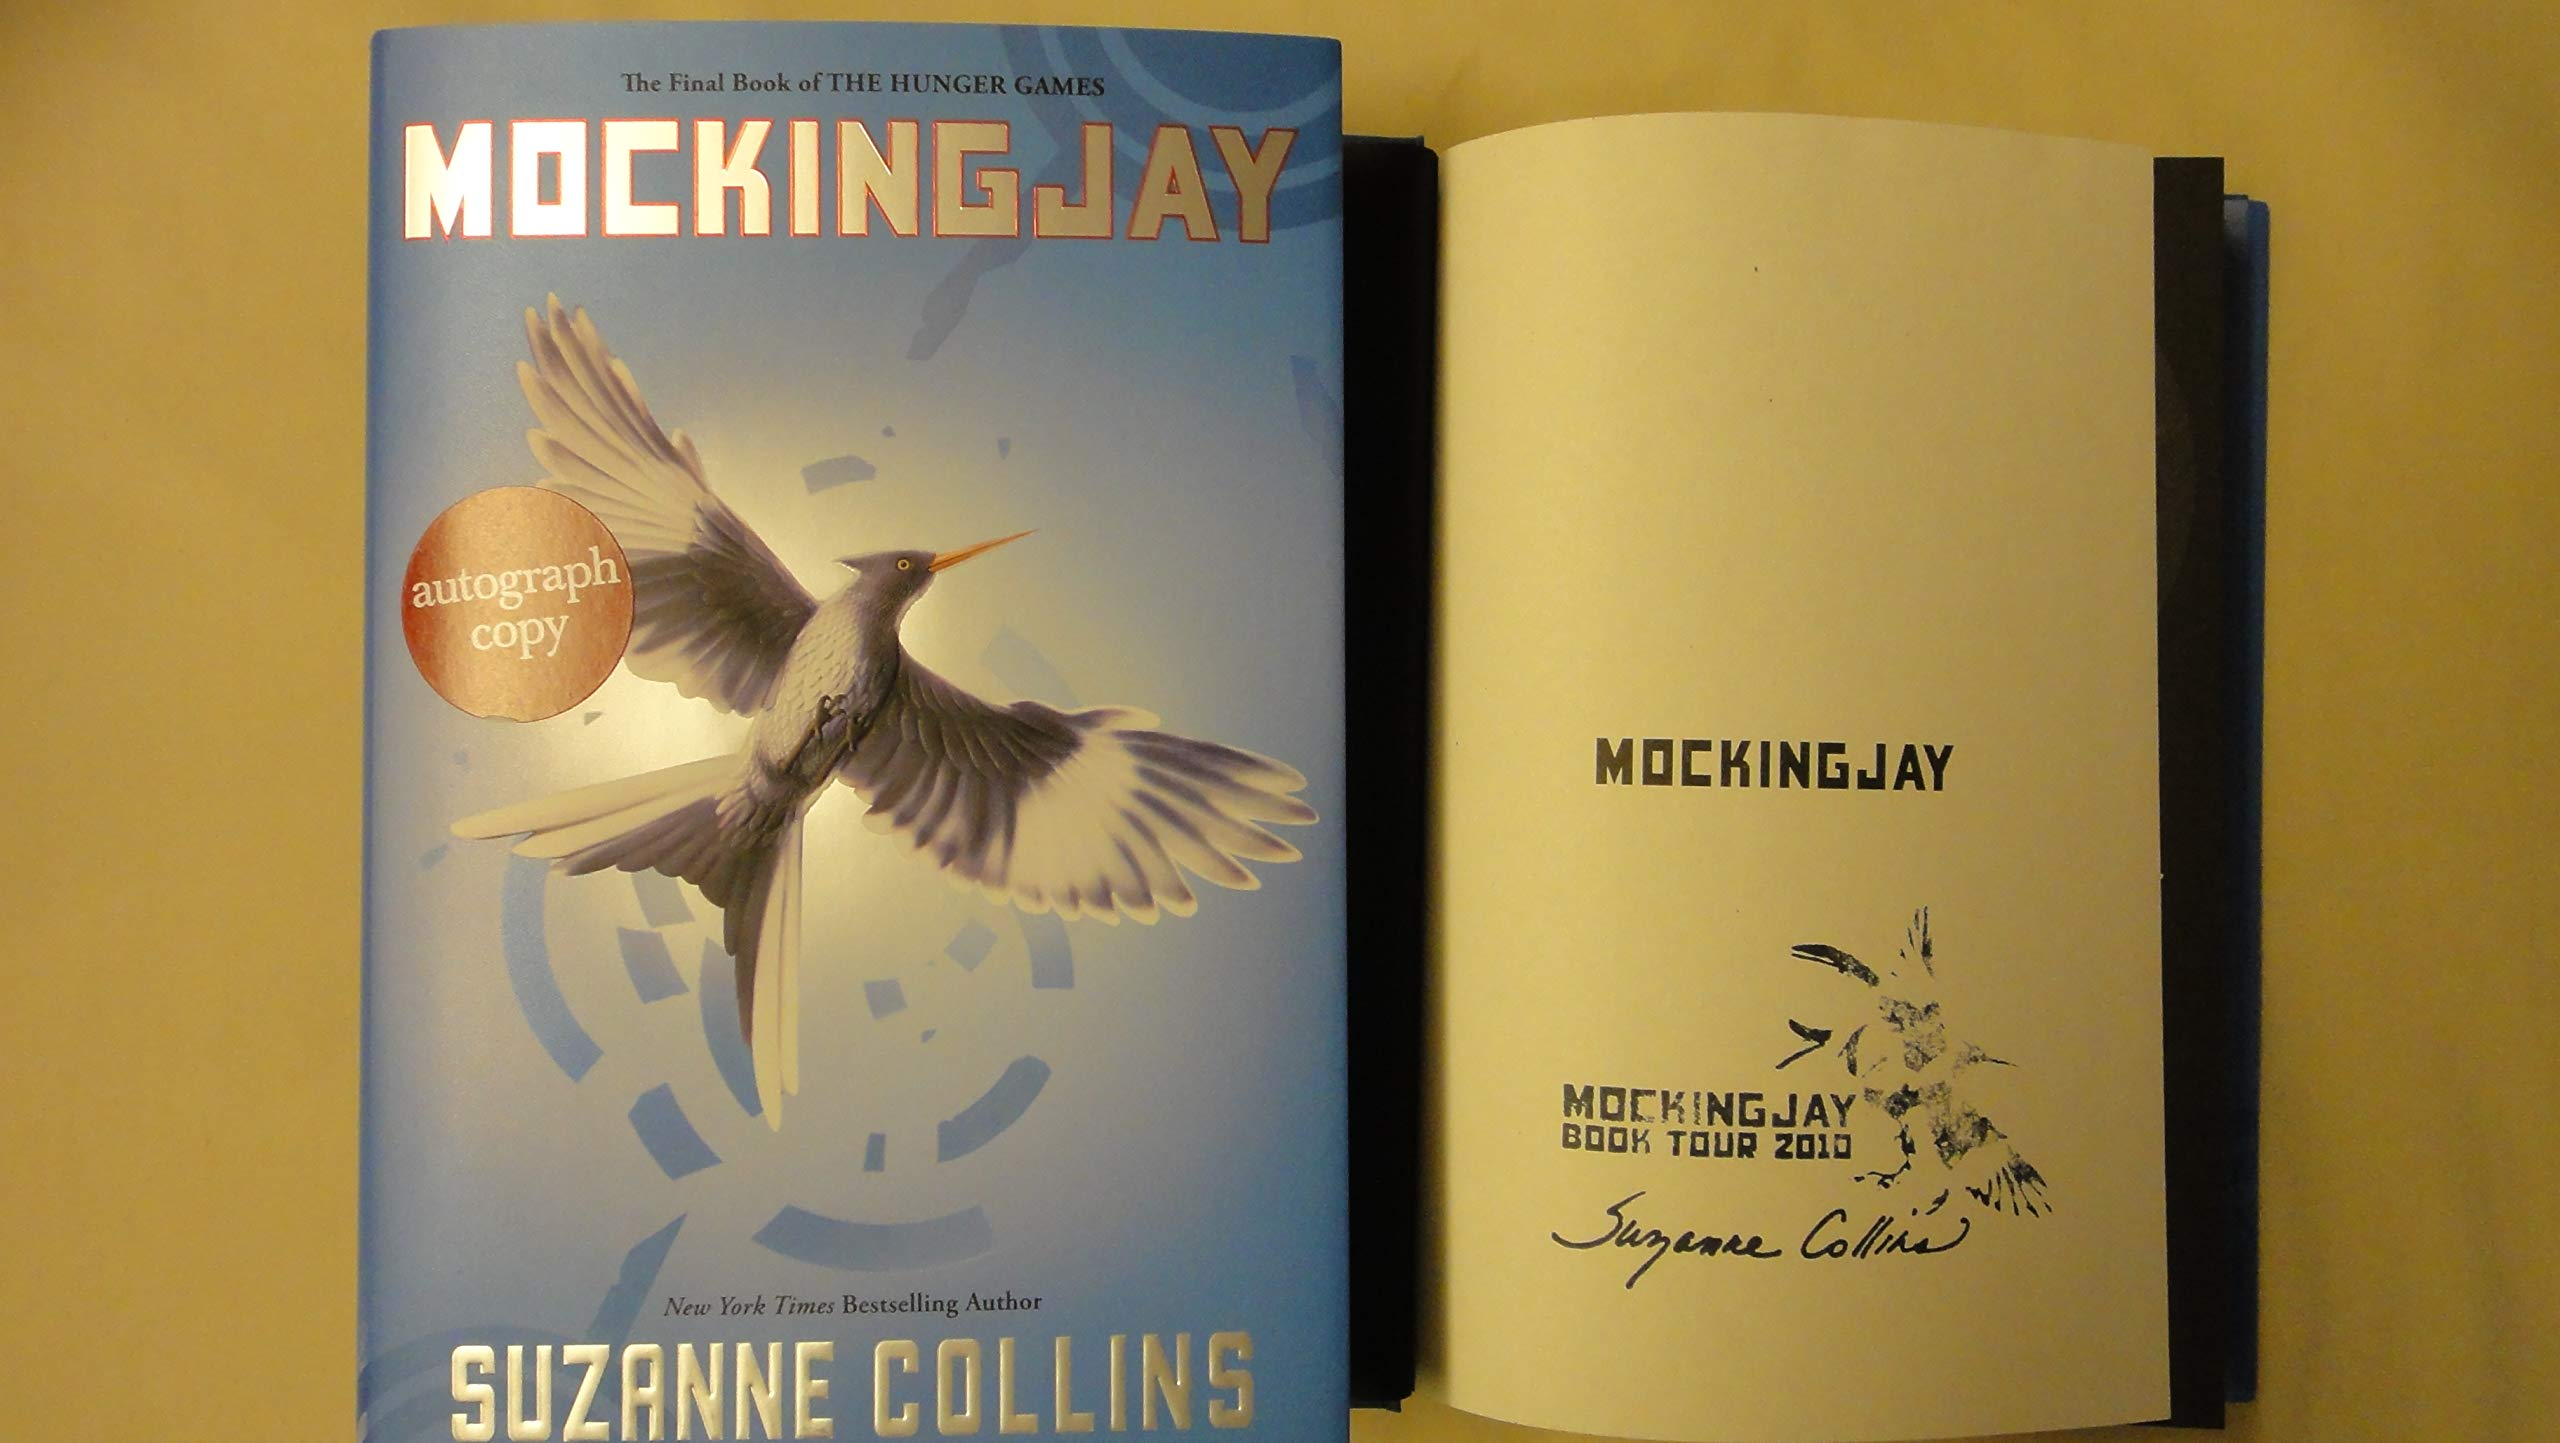 mockingjay the final book of the hunger games